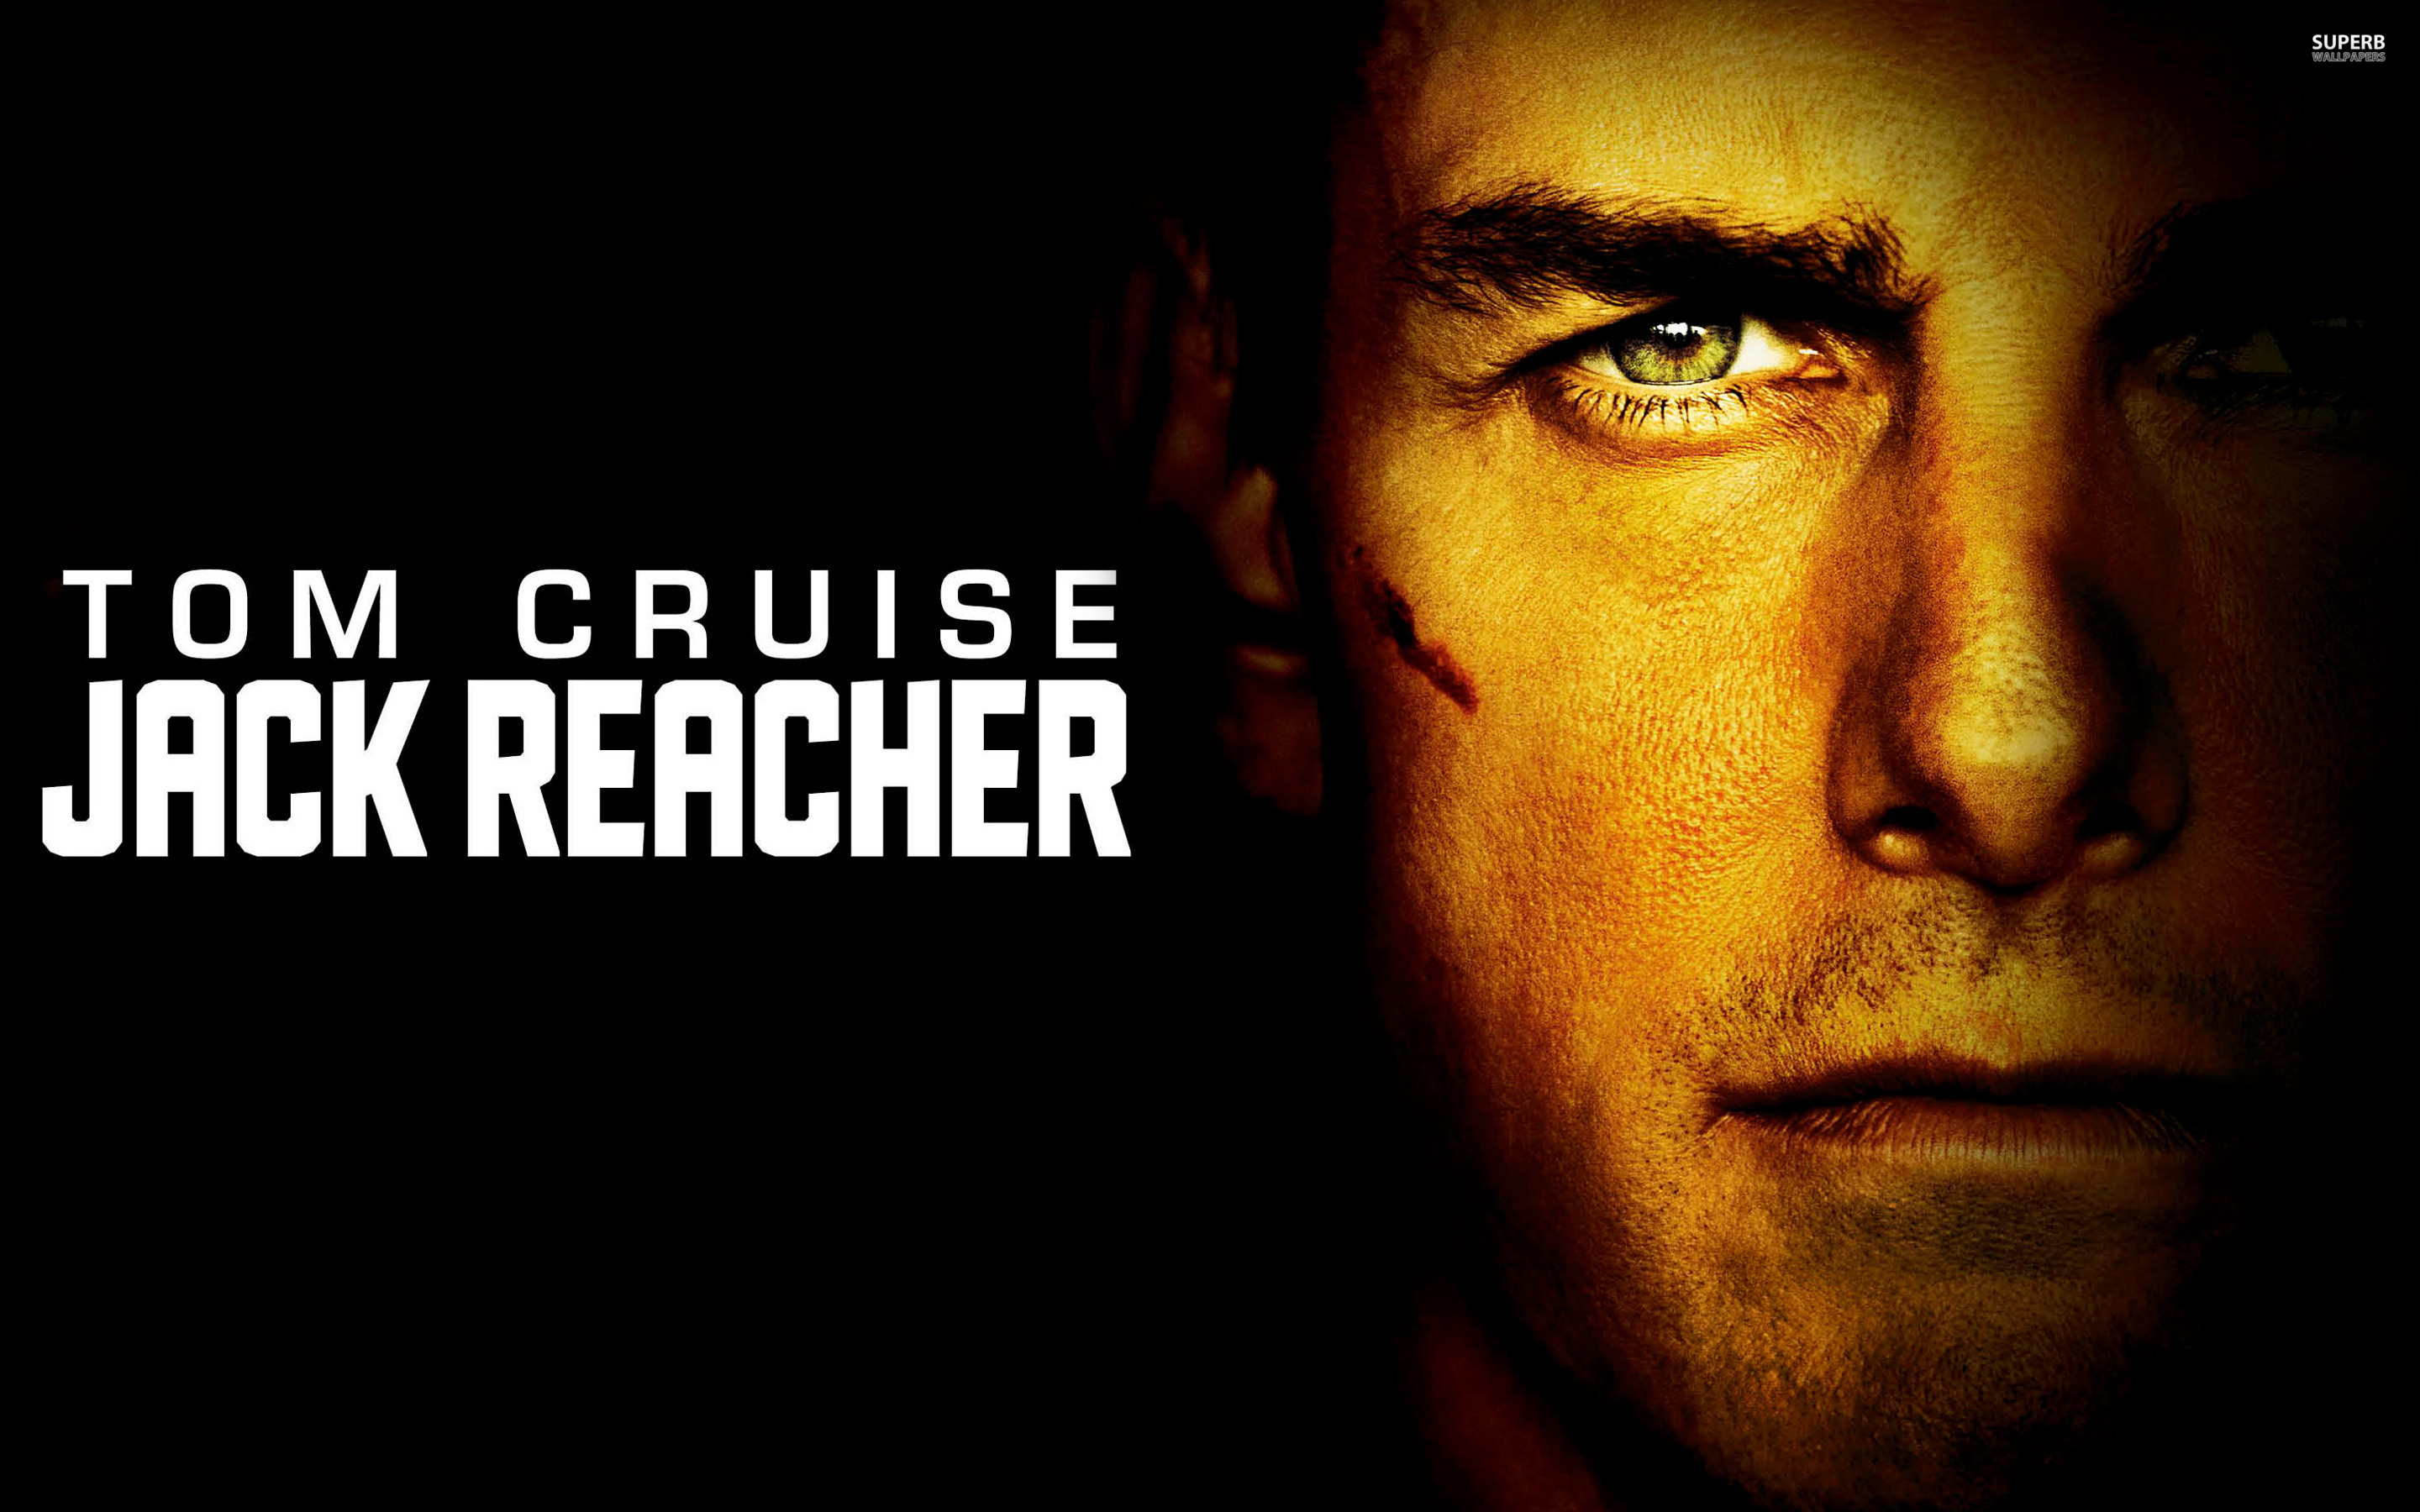 Tom Cruise Quotes 90 Wallpapers: My New Addiction: Jack Reacher